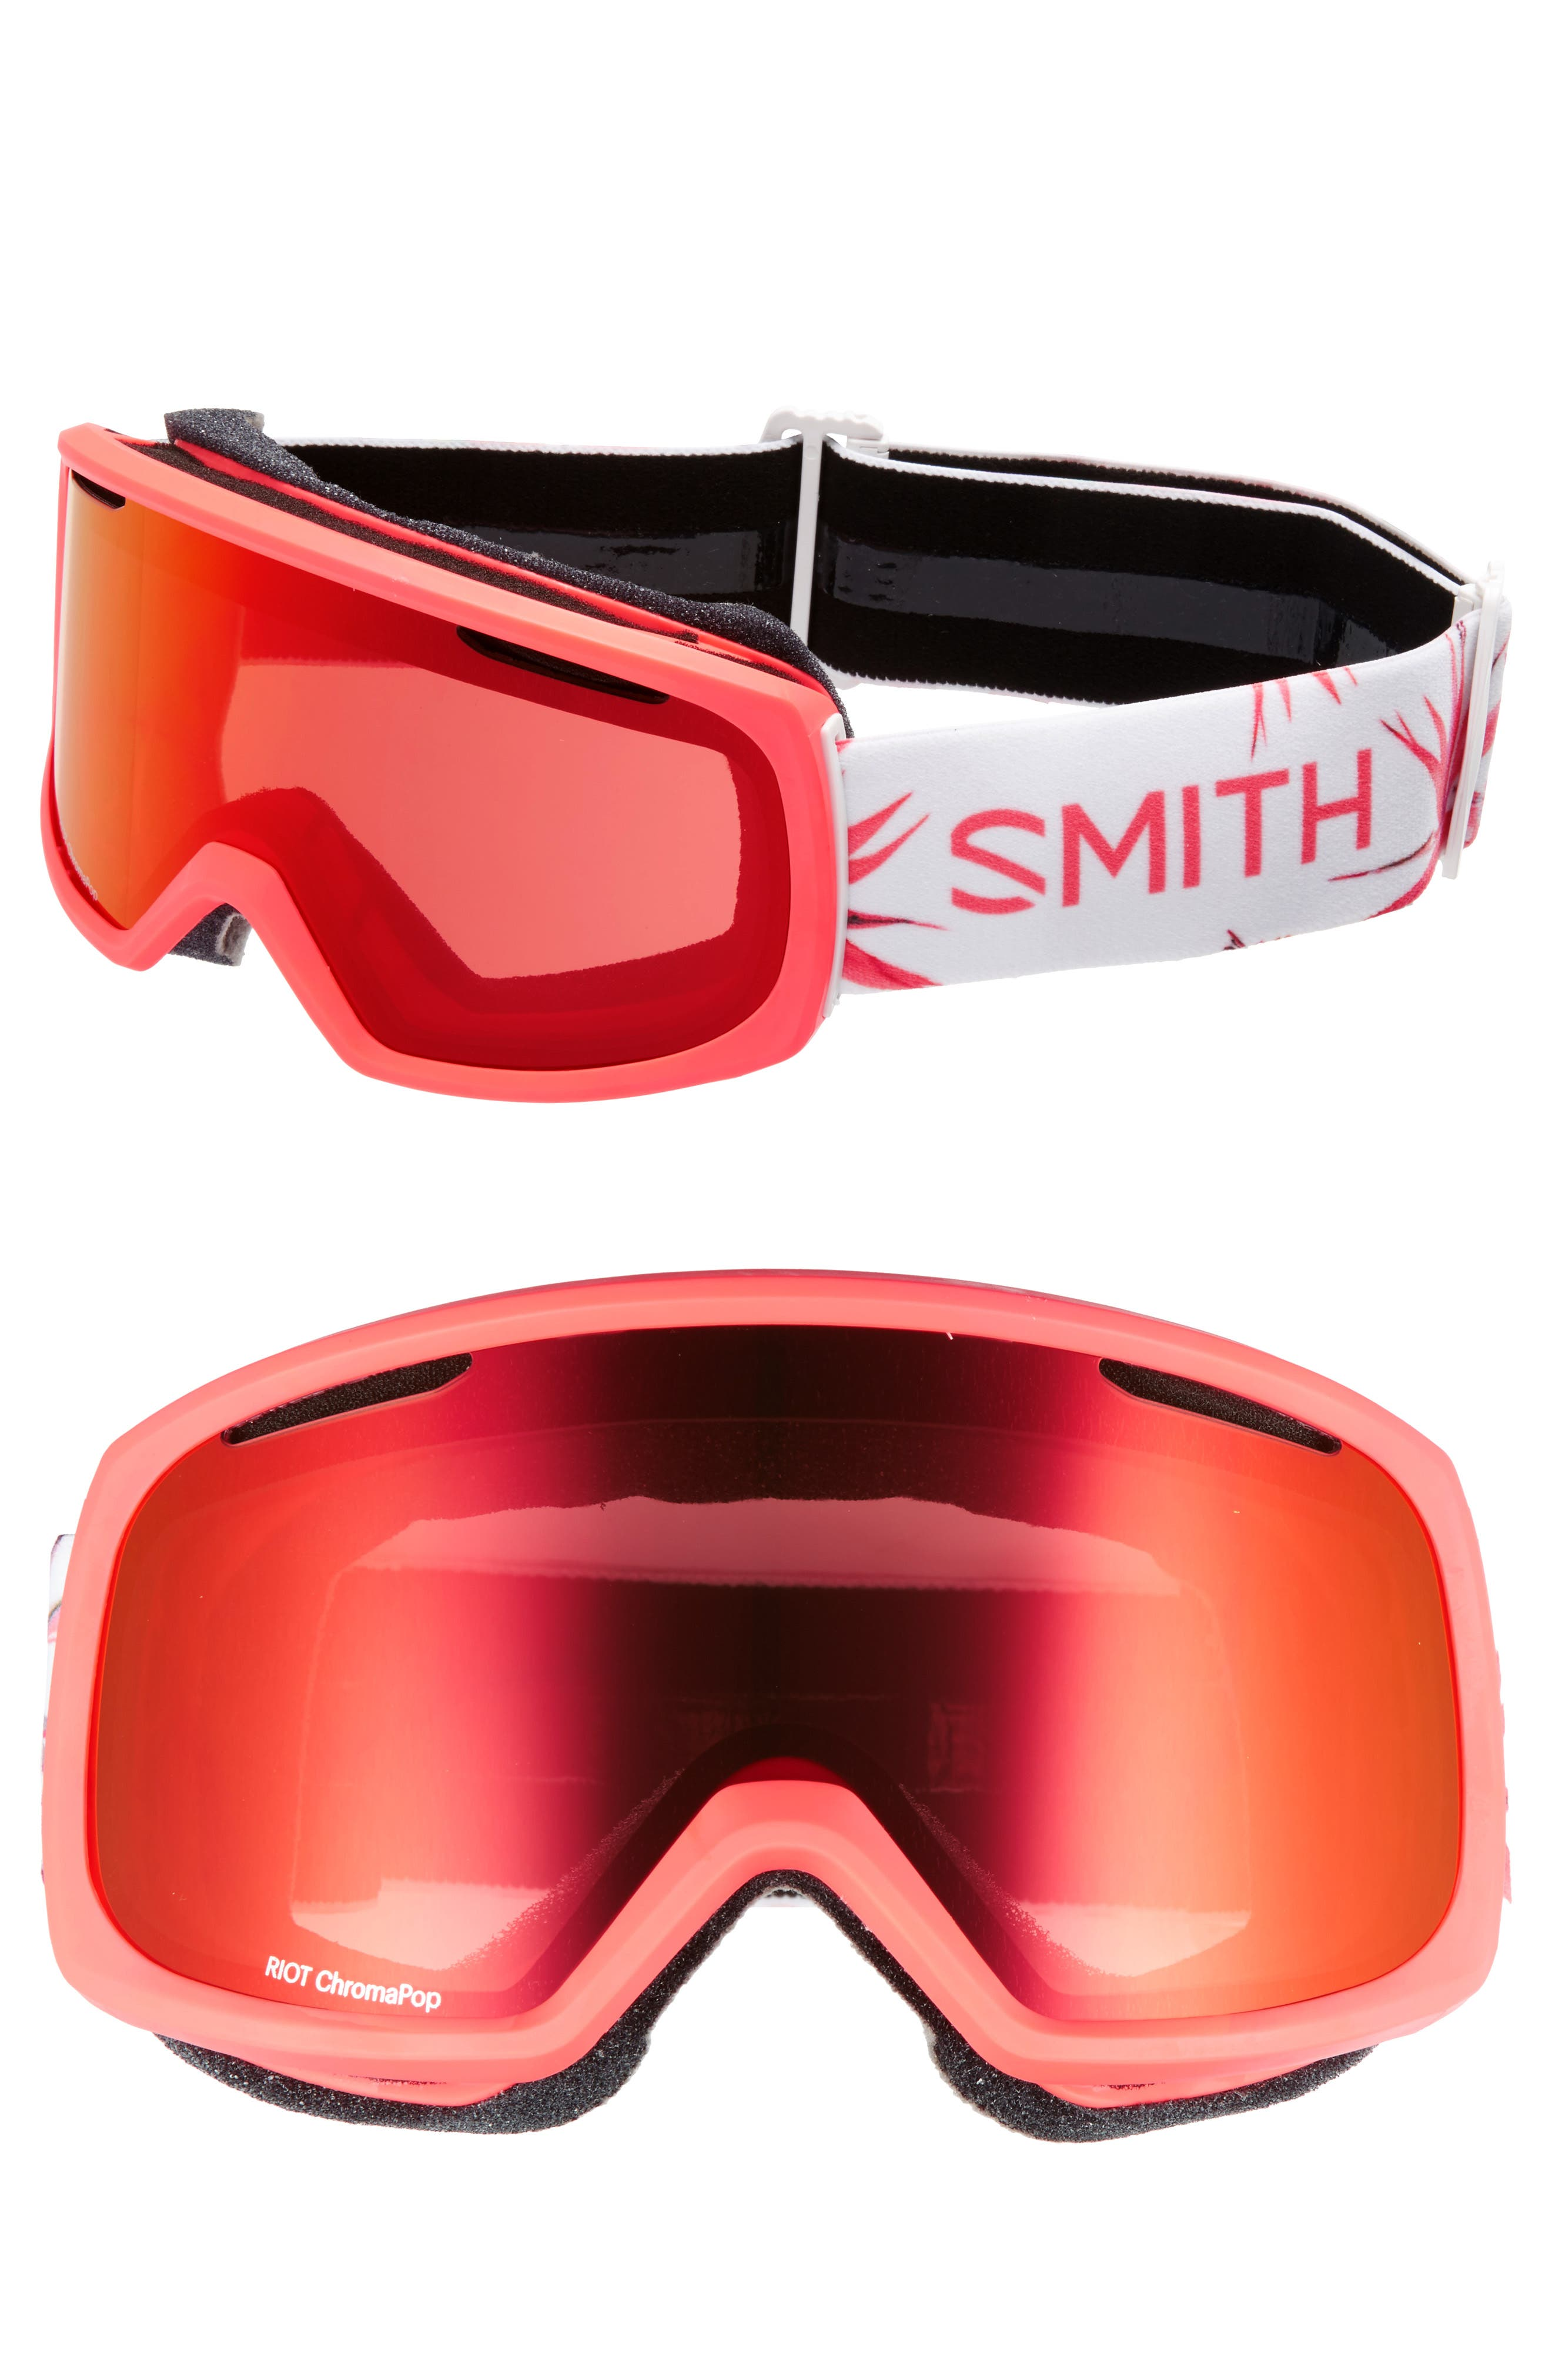 Smith Riot Chromapop Snow/Ski Goggles